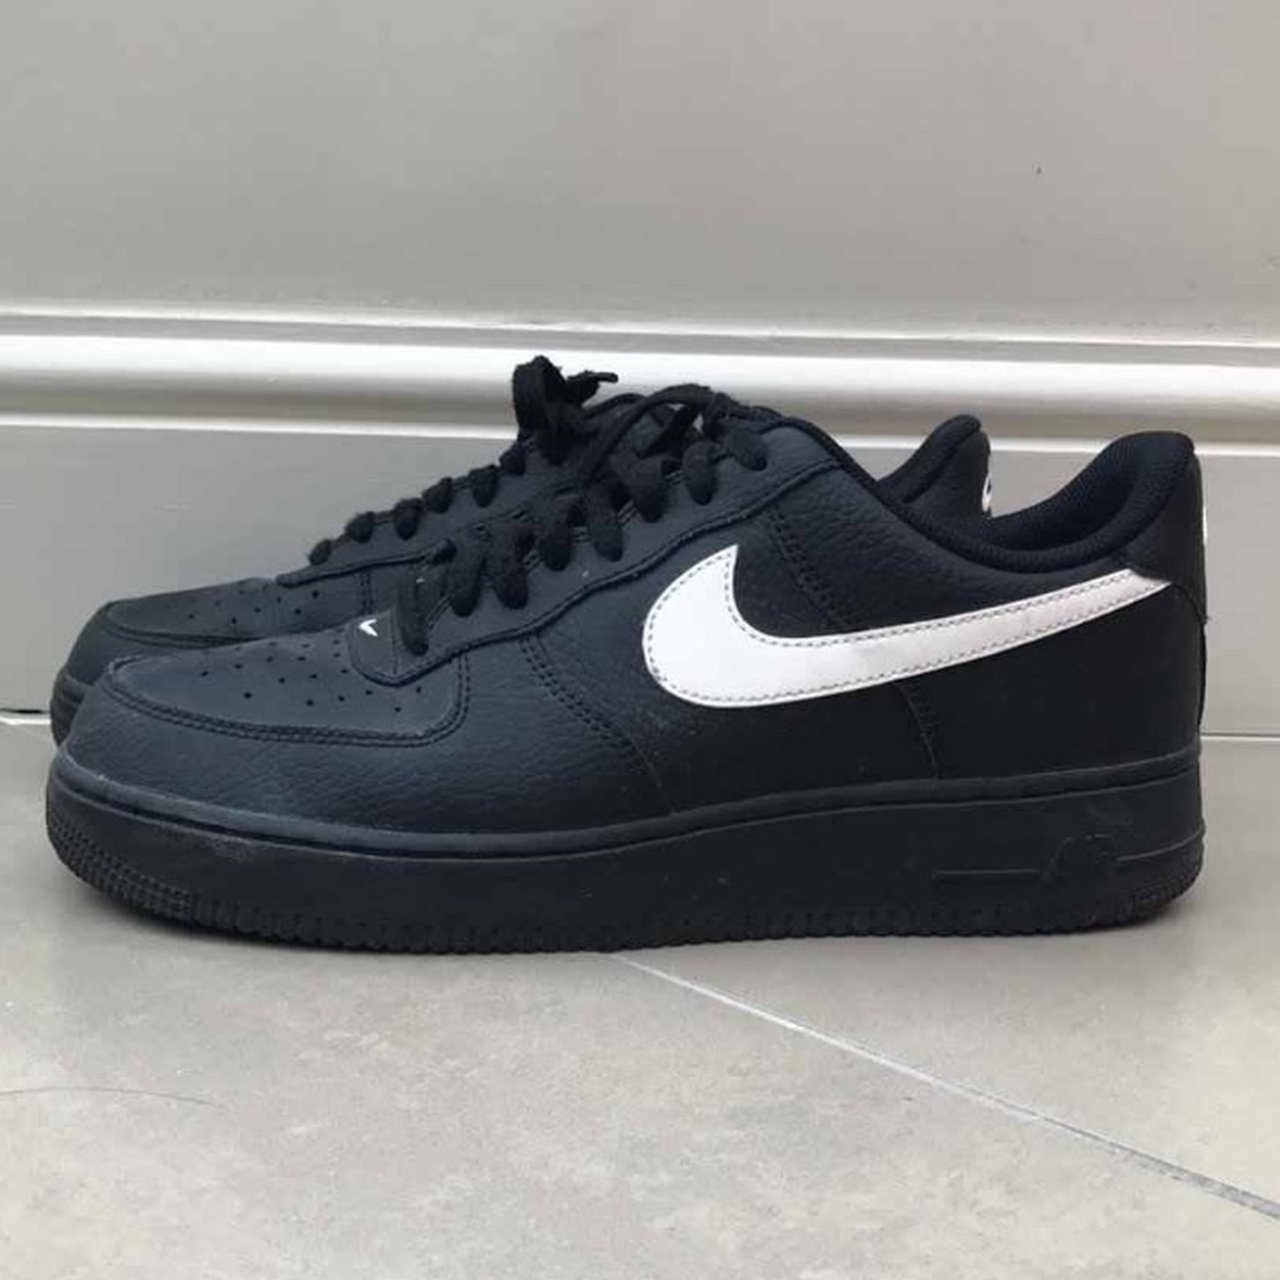 """new styles 19455 cce75 Nike X AJ Tracey """"Black pack"""" air forces af1. Black with 9, - Depop"""